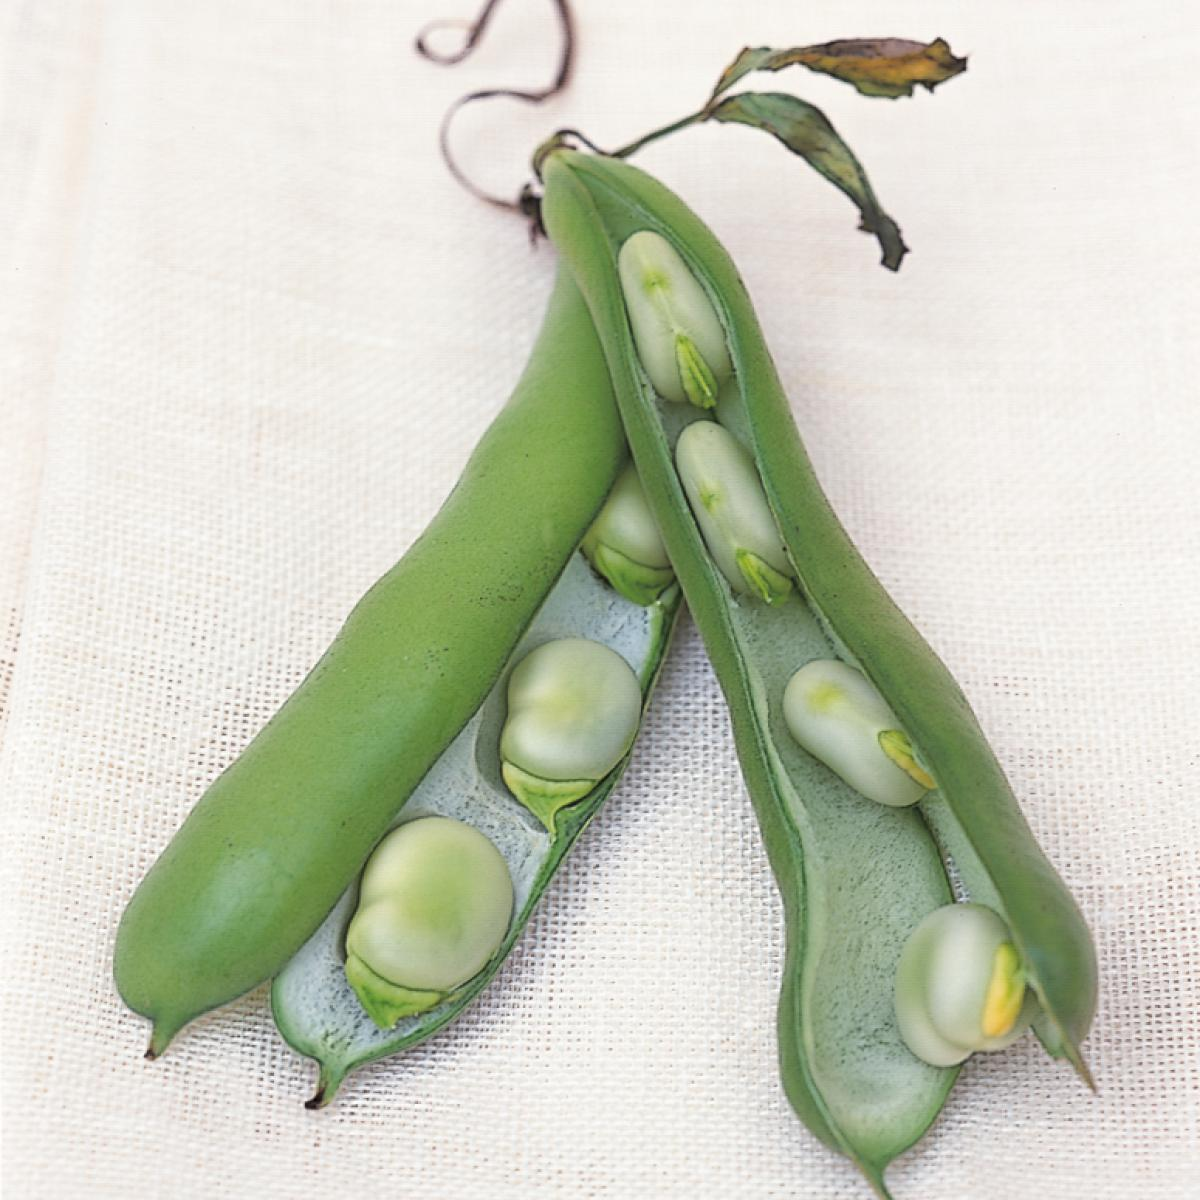 Ingredient htc broad beans